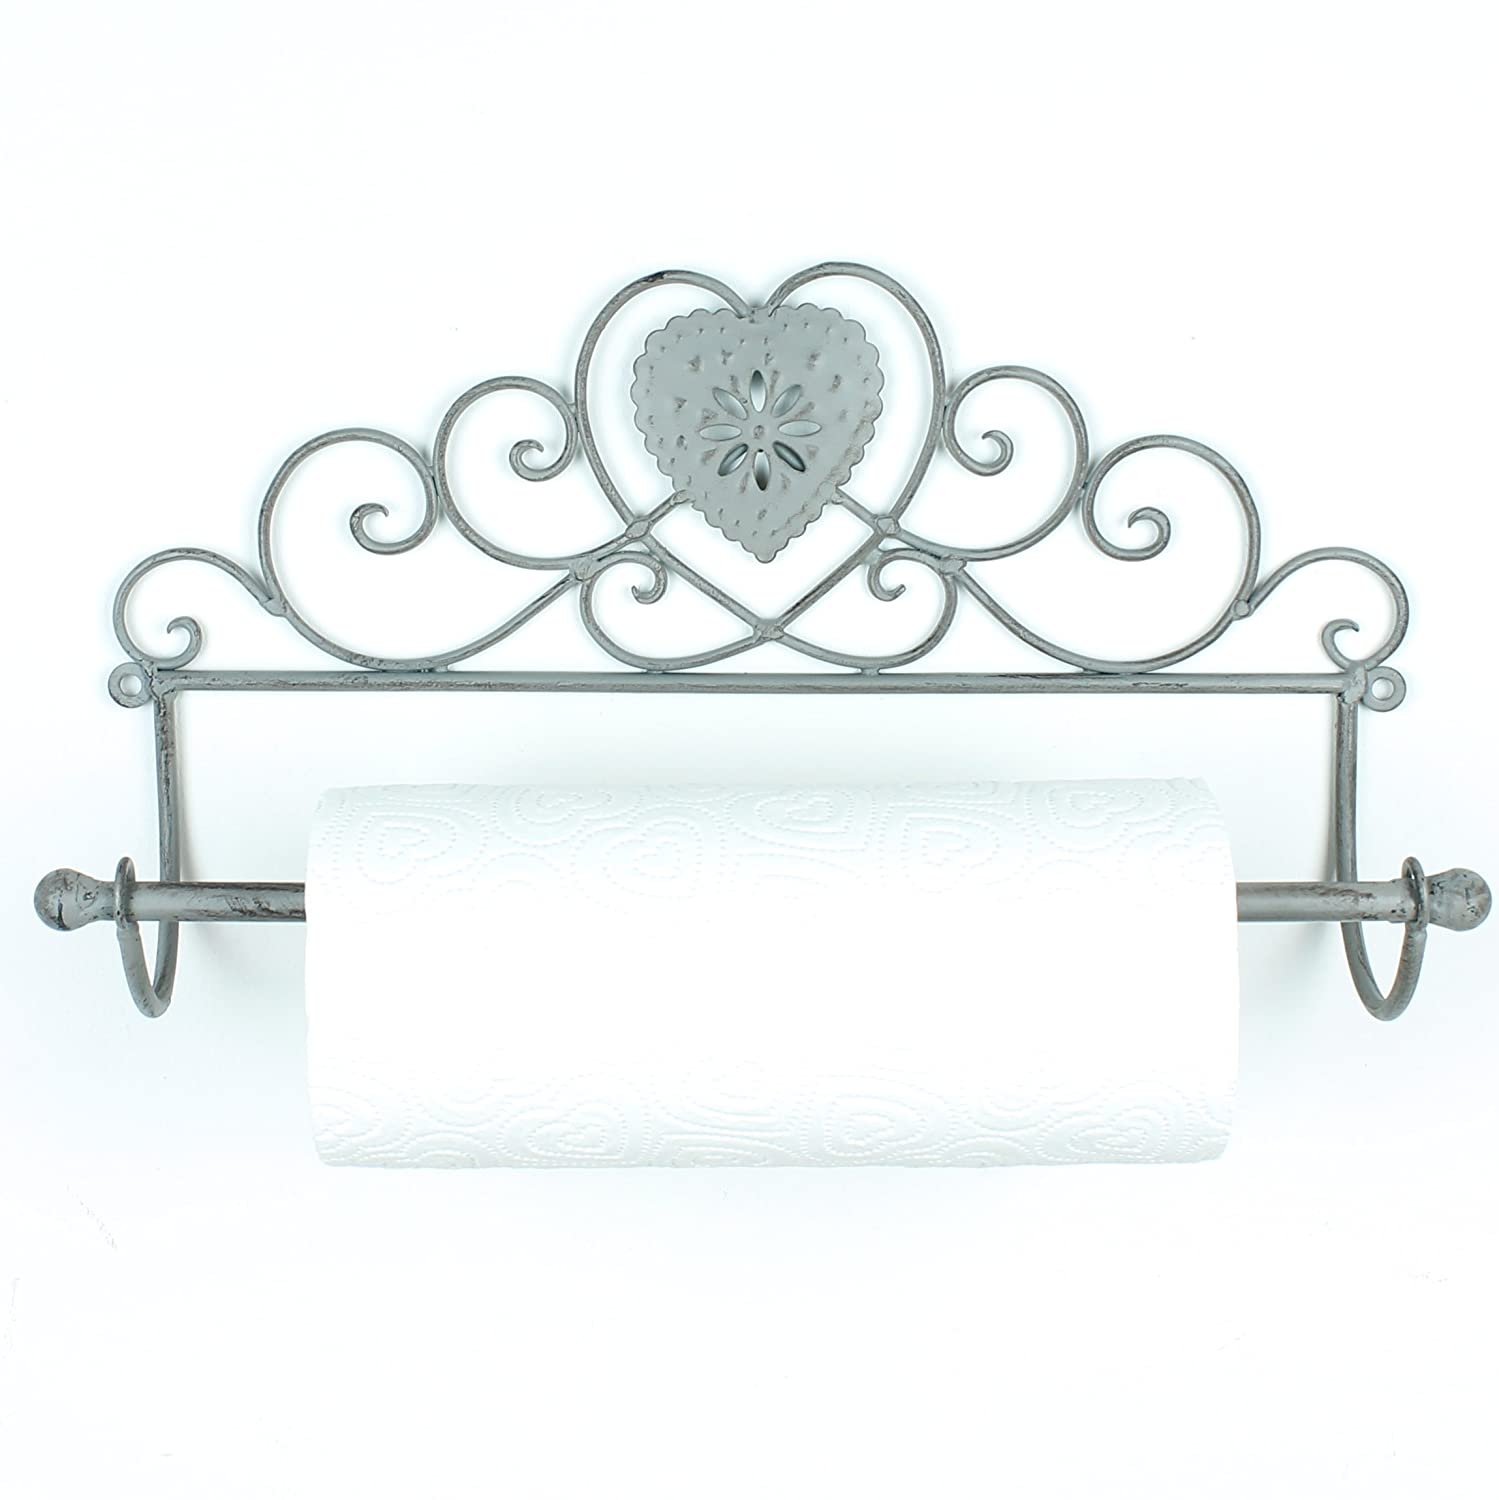 Boutique Heart Kitchen Roll Holder (vintage grey) Chaise Longue Boutique